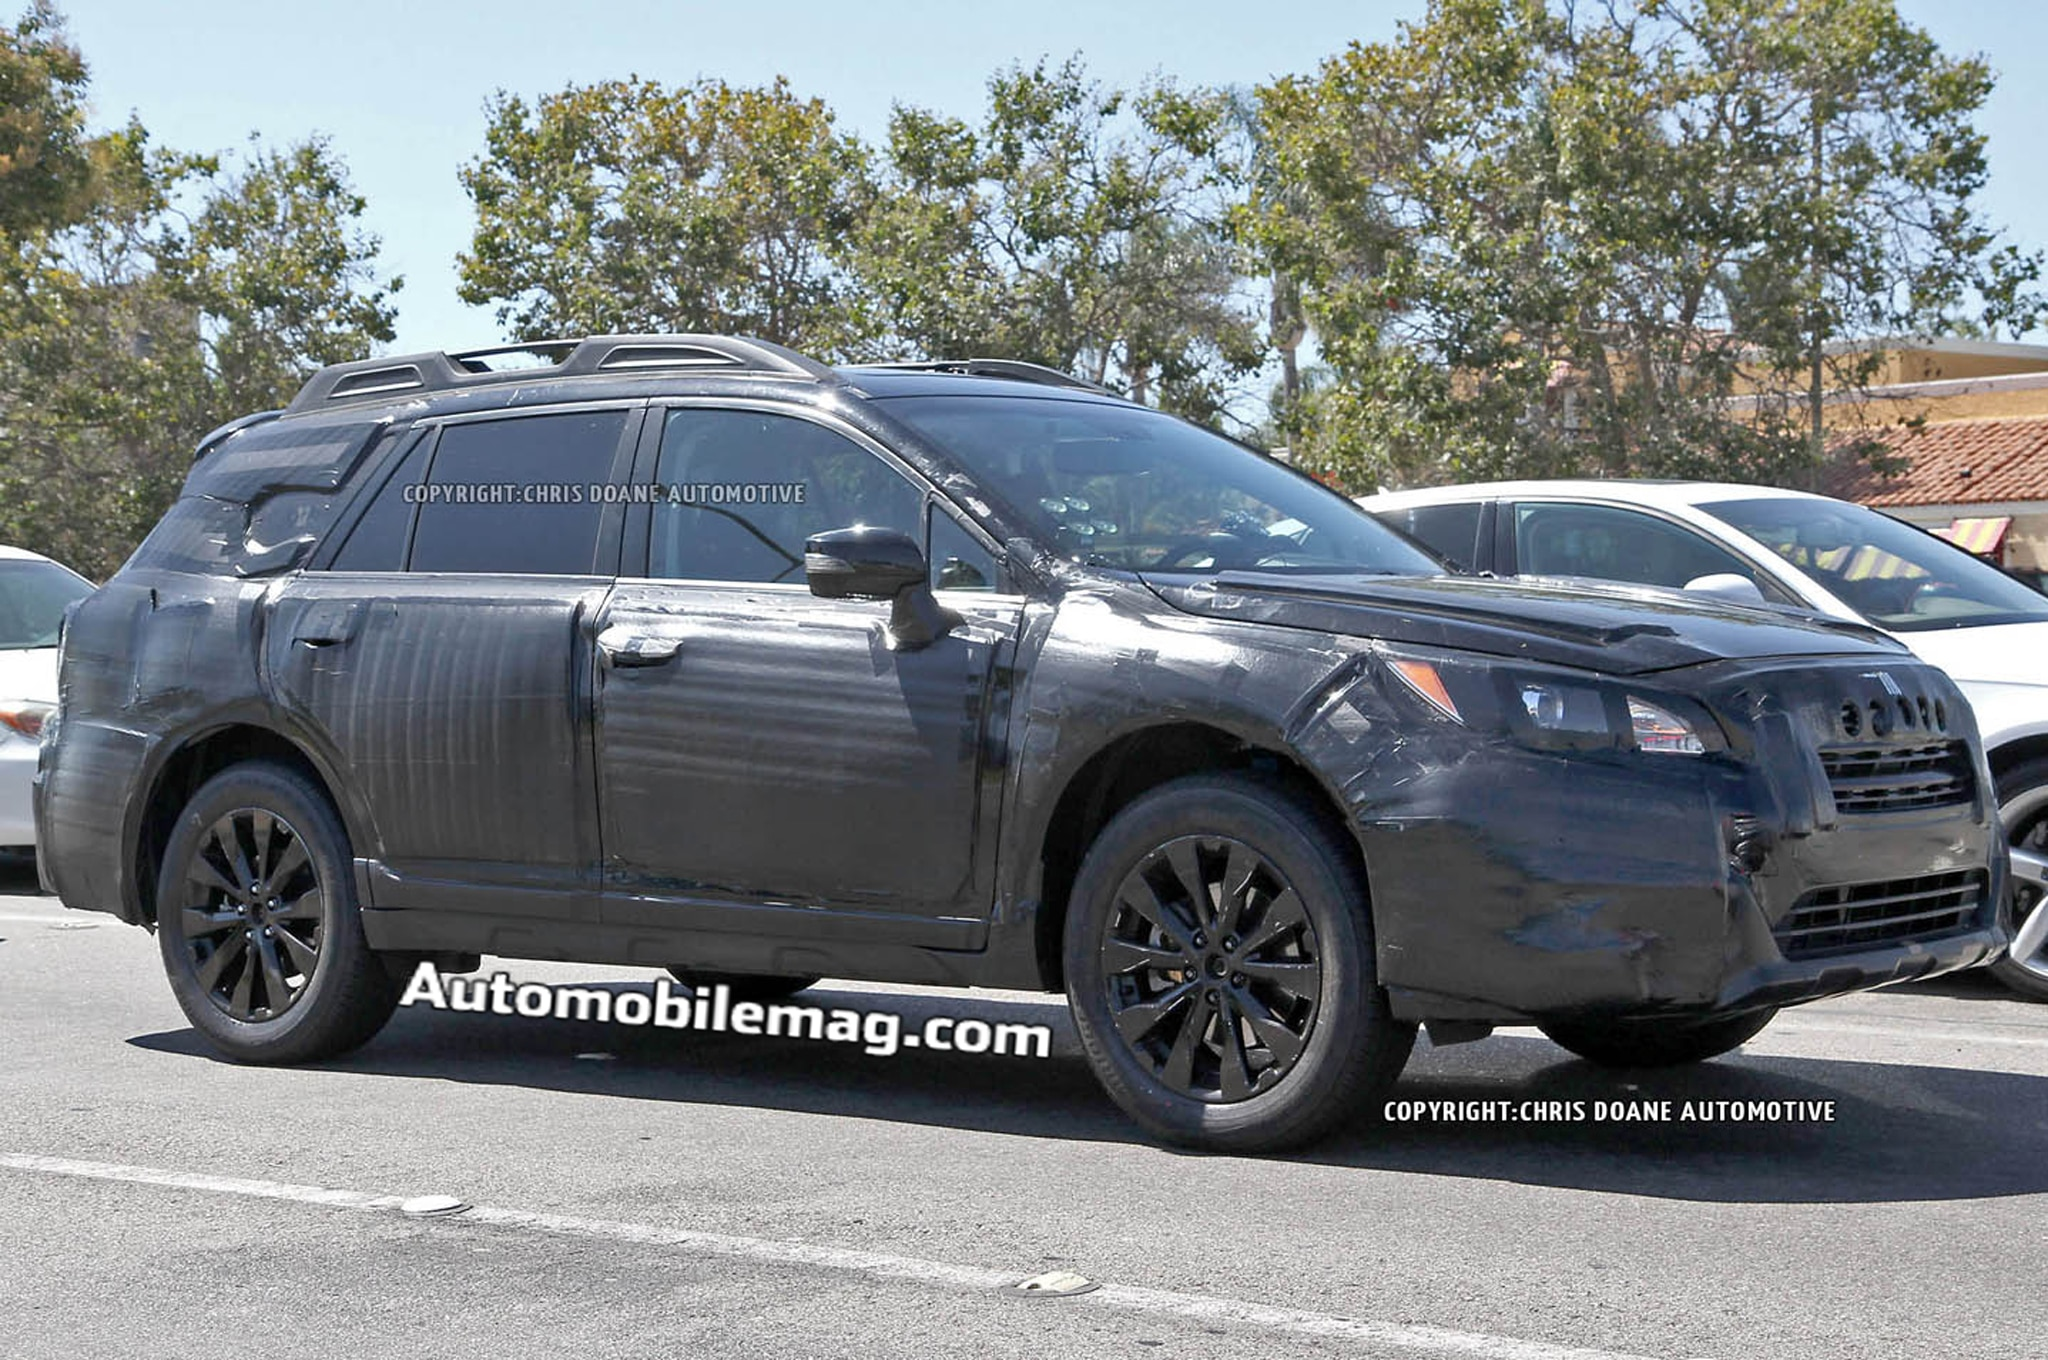 2015 Subaru Outback Front Three Quarter Spied 41